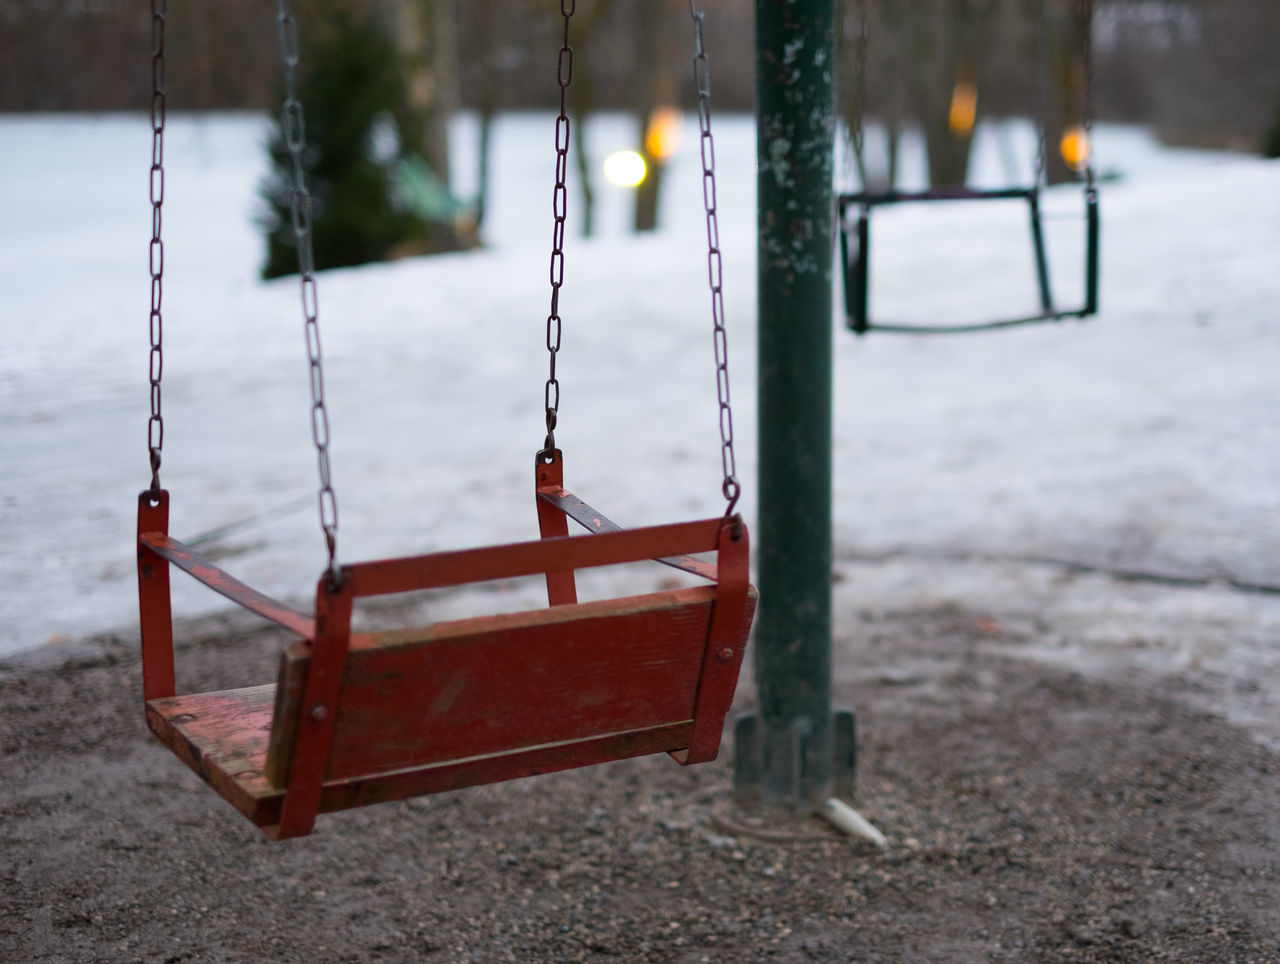 carousel of life Carousel Children Close-up Day Hanging No People Outdoors Playground Swing Winter Abstract Abstract Photography Playgrounds Old Antique City Life Cold Temperature Snow Fine Art Still Life Focus On Foreground Flying Swing